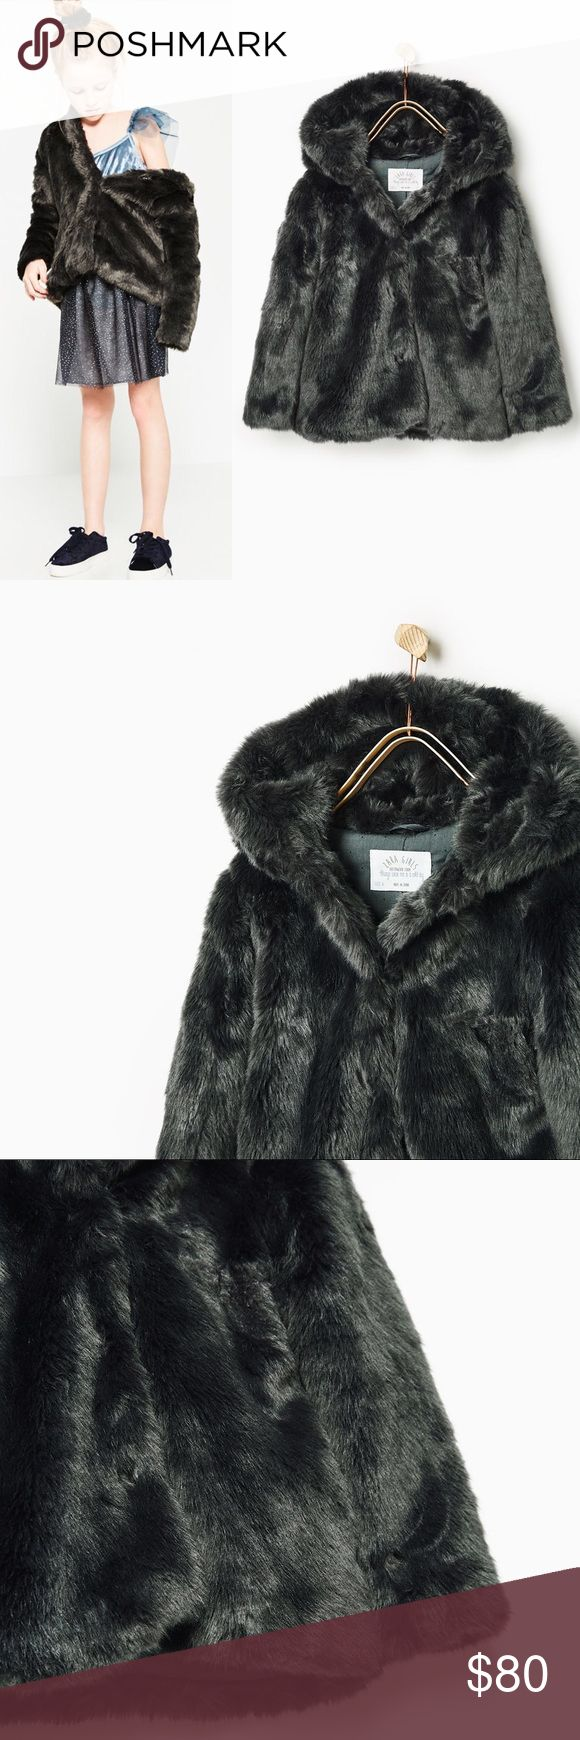 Fur Hooded Coat Zara Girls Hooded three quarter coat with concealed press studs for fastening. Front pockets. Printed lining Zara Jackets & Coats Puffers